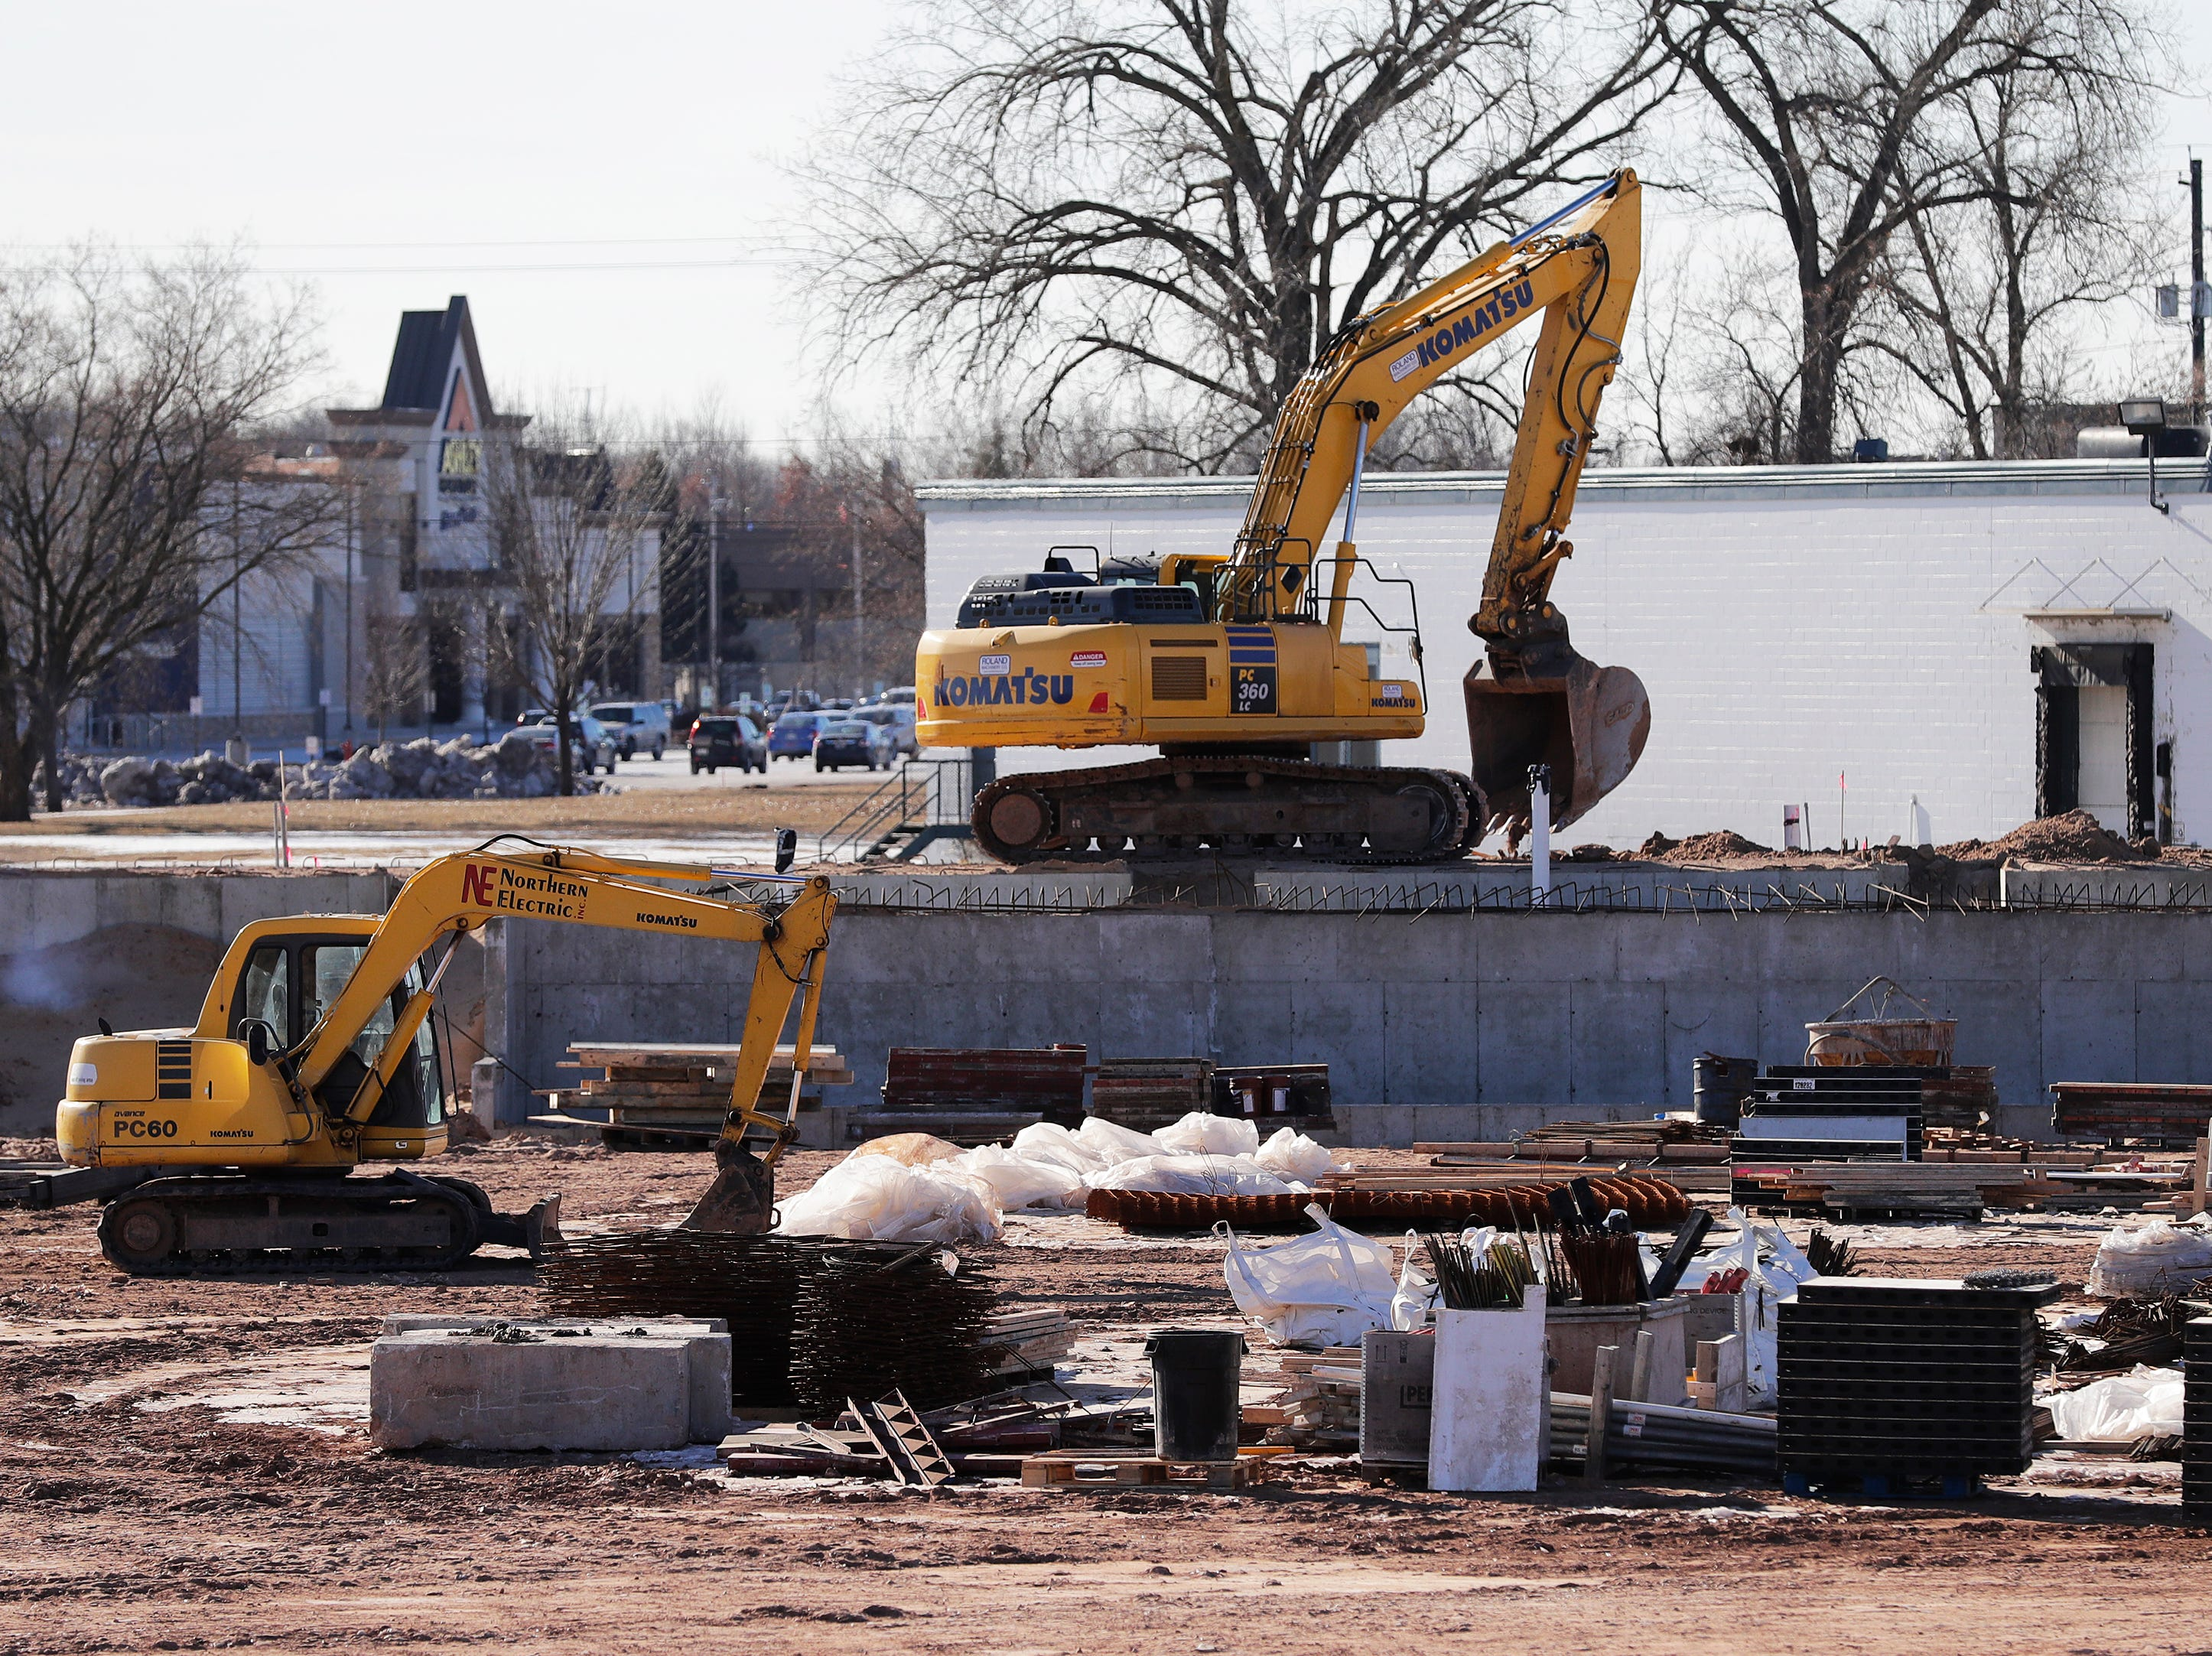 Construction behind the visiting dugout at Capital Credit Union Park is ongoing on Wednesday, January 16, 2019 in Ashwaubenon, Wis. The stadium is set to open this spring and will host the Green Bay Booyah baseball team in the Northwoods League and a United Soccer Leagues League 2 team.